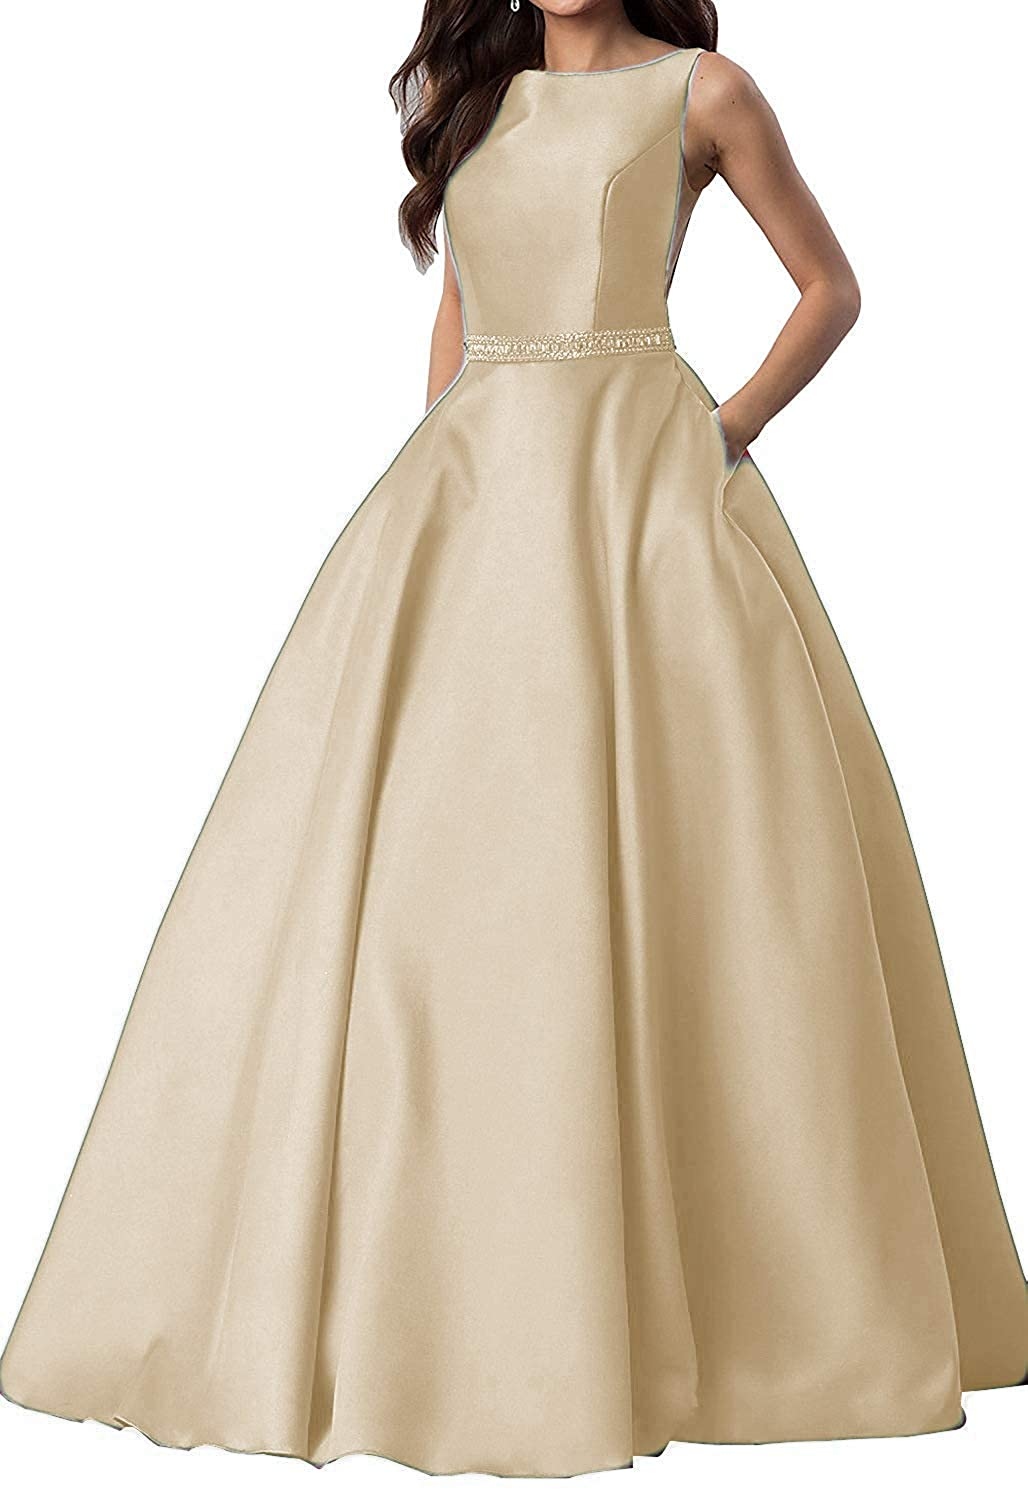 Champagne liangjinsmkj Women's Beaded Prom Dresses Long 2019 Satin Evening Party Gowns with Pockets